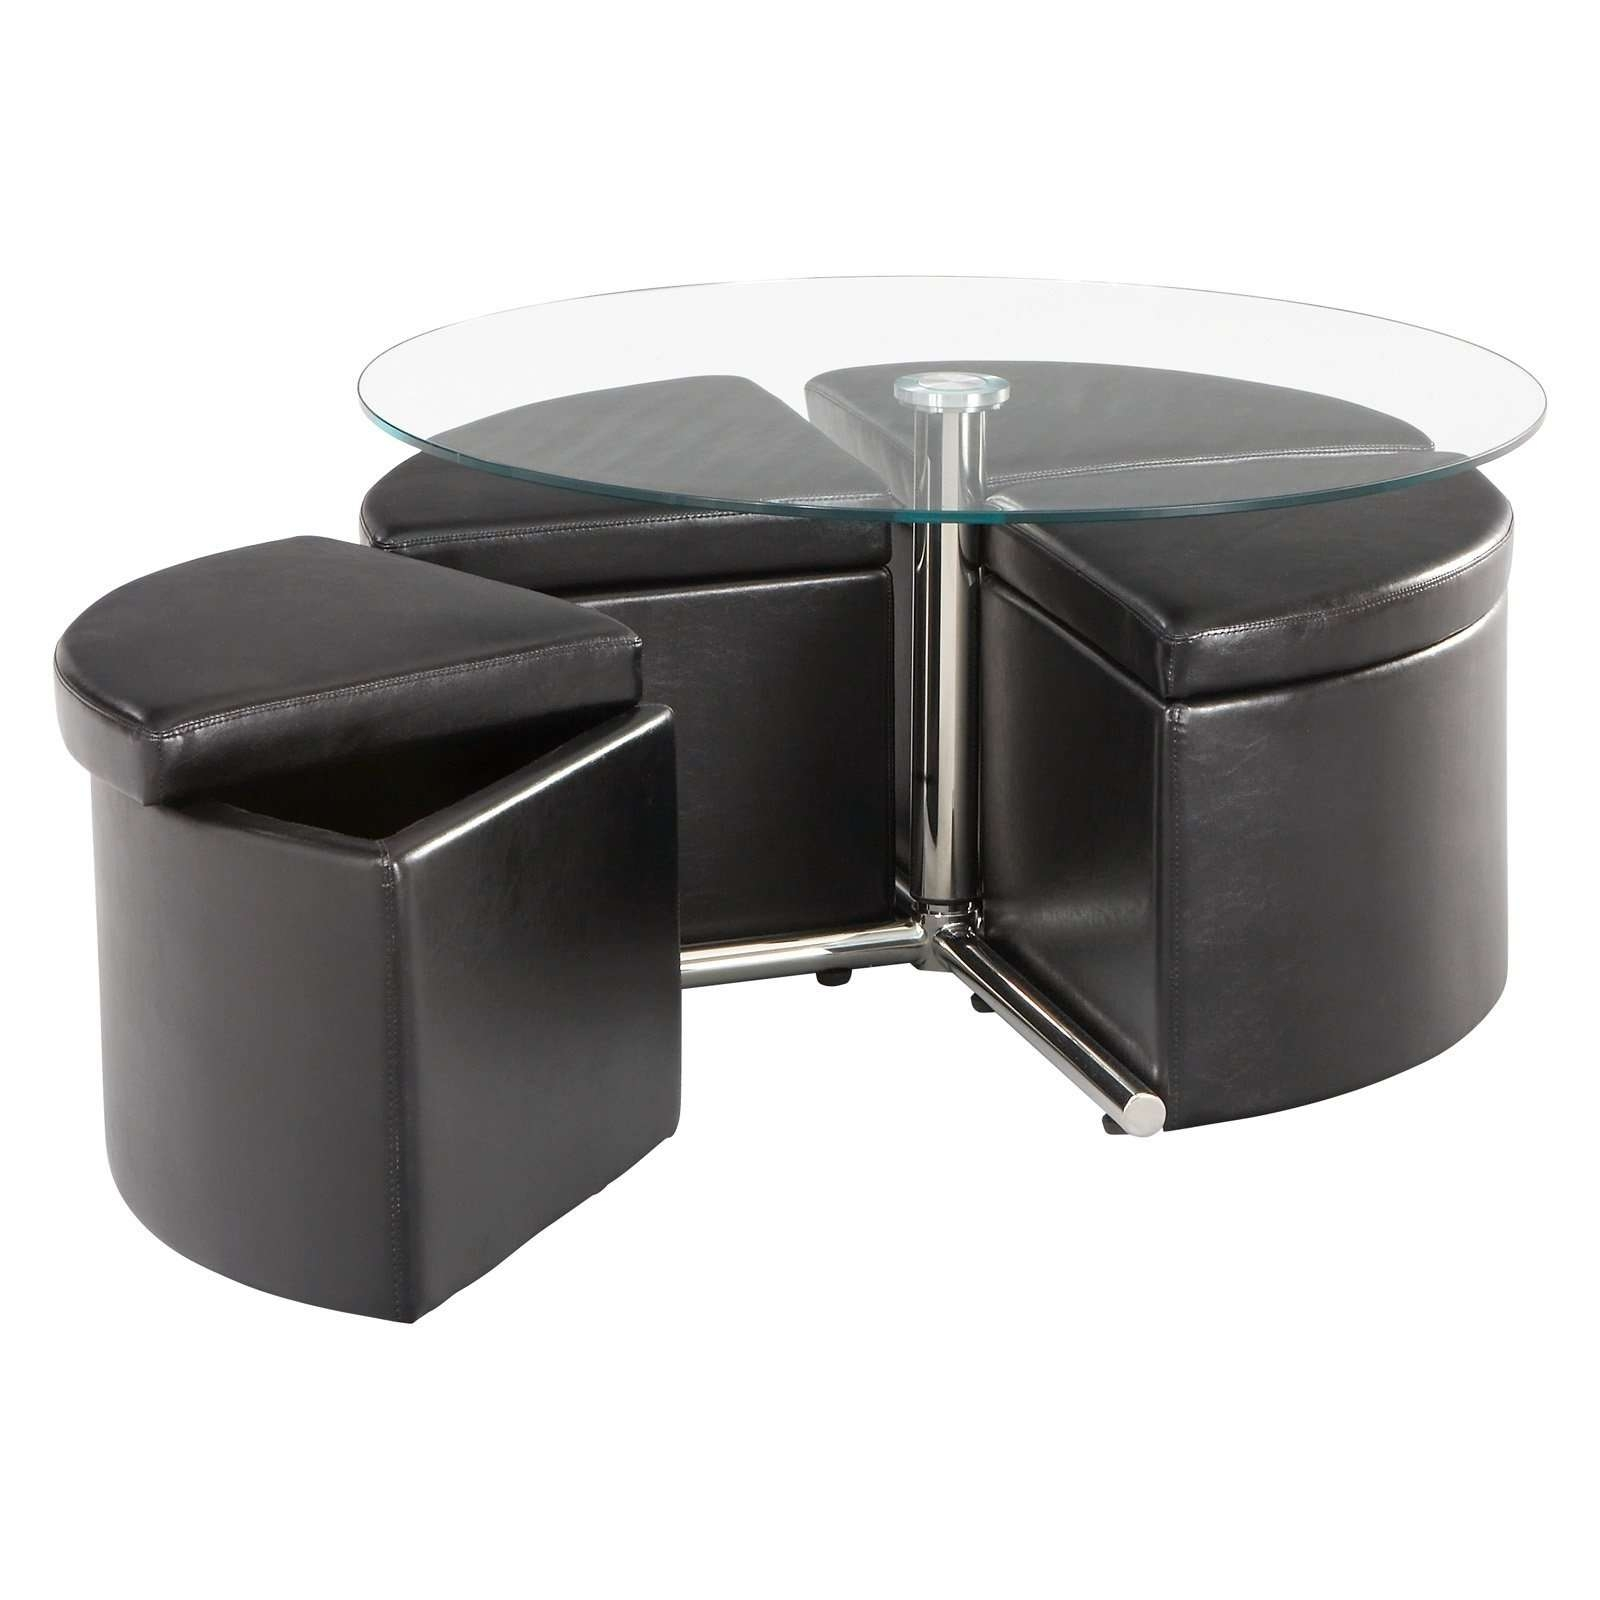 2017 Round Coffee Tables With Storages Within Good Round Coffee Table With Storage On Round Coffee Tables With (View 17 of 20)